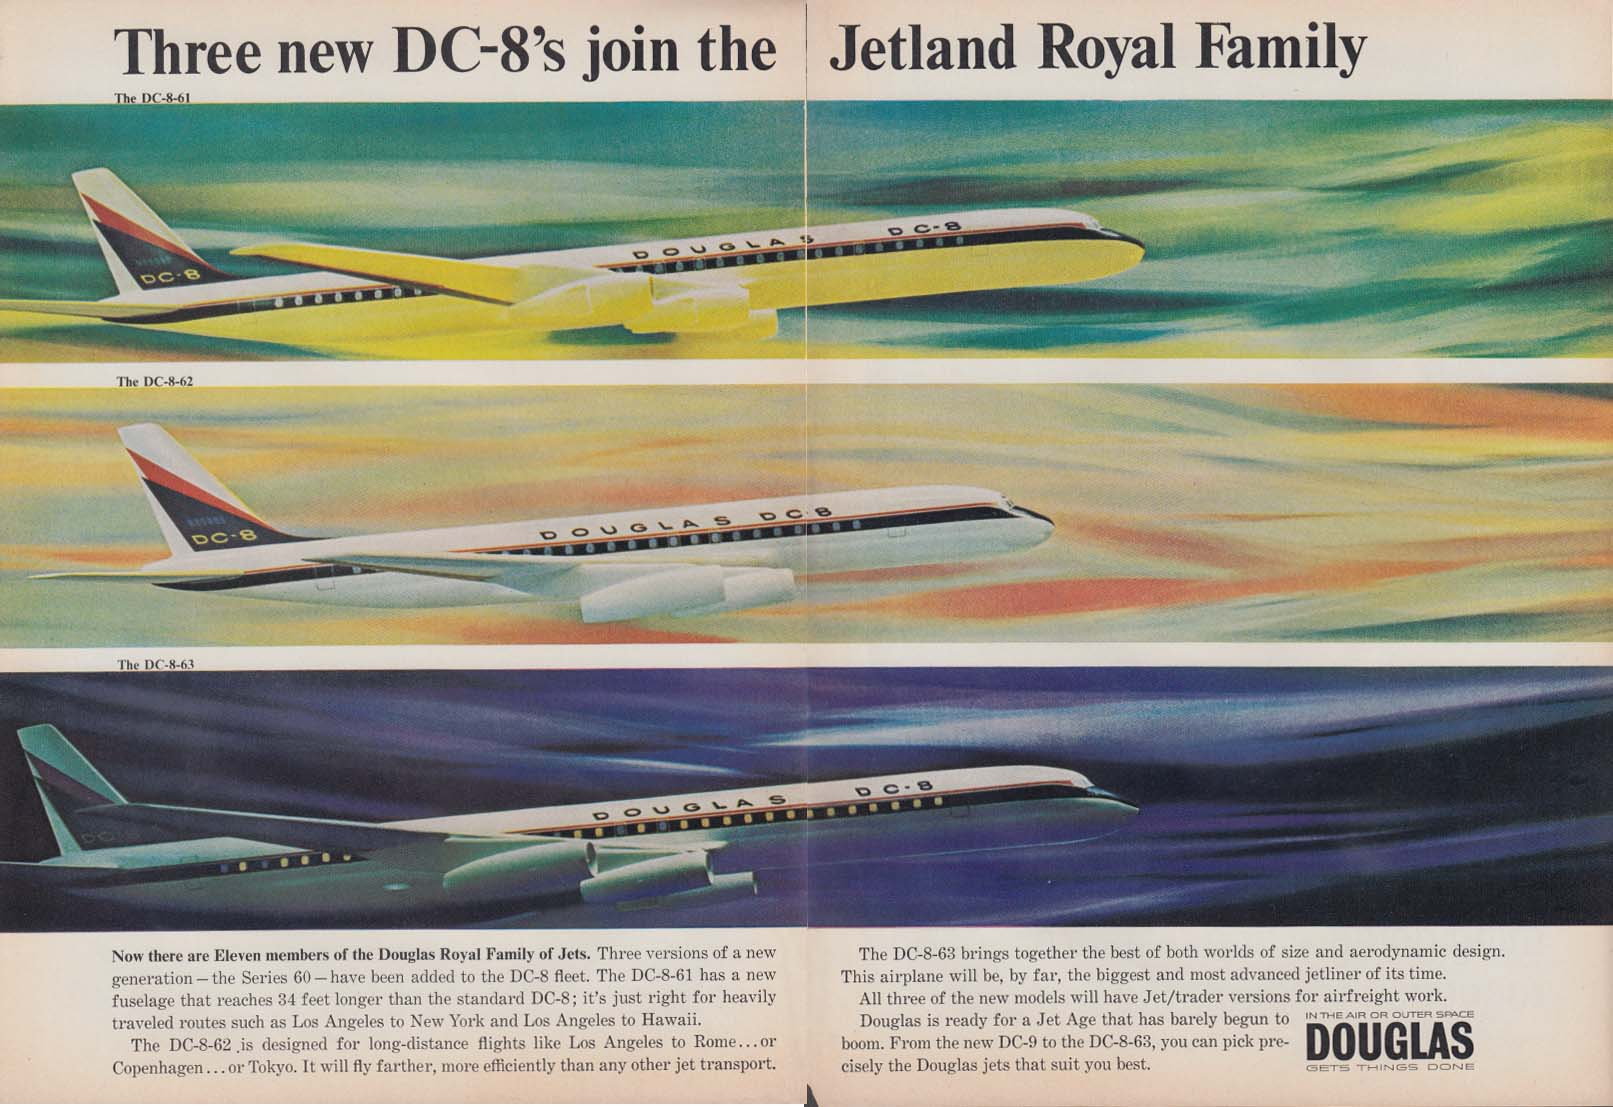 3 new DC-8s join Jetland Royal Family Douglas DC-8-61 DC-8-62 DC-8-63 ad 1965